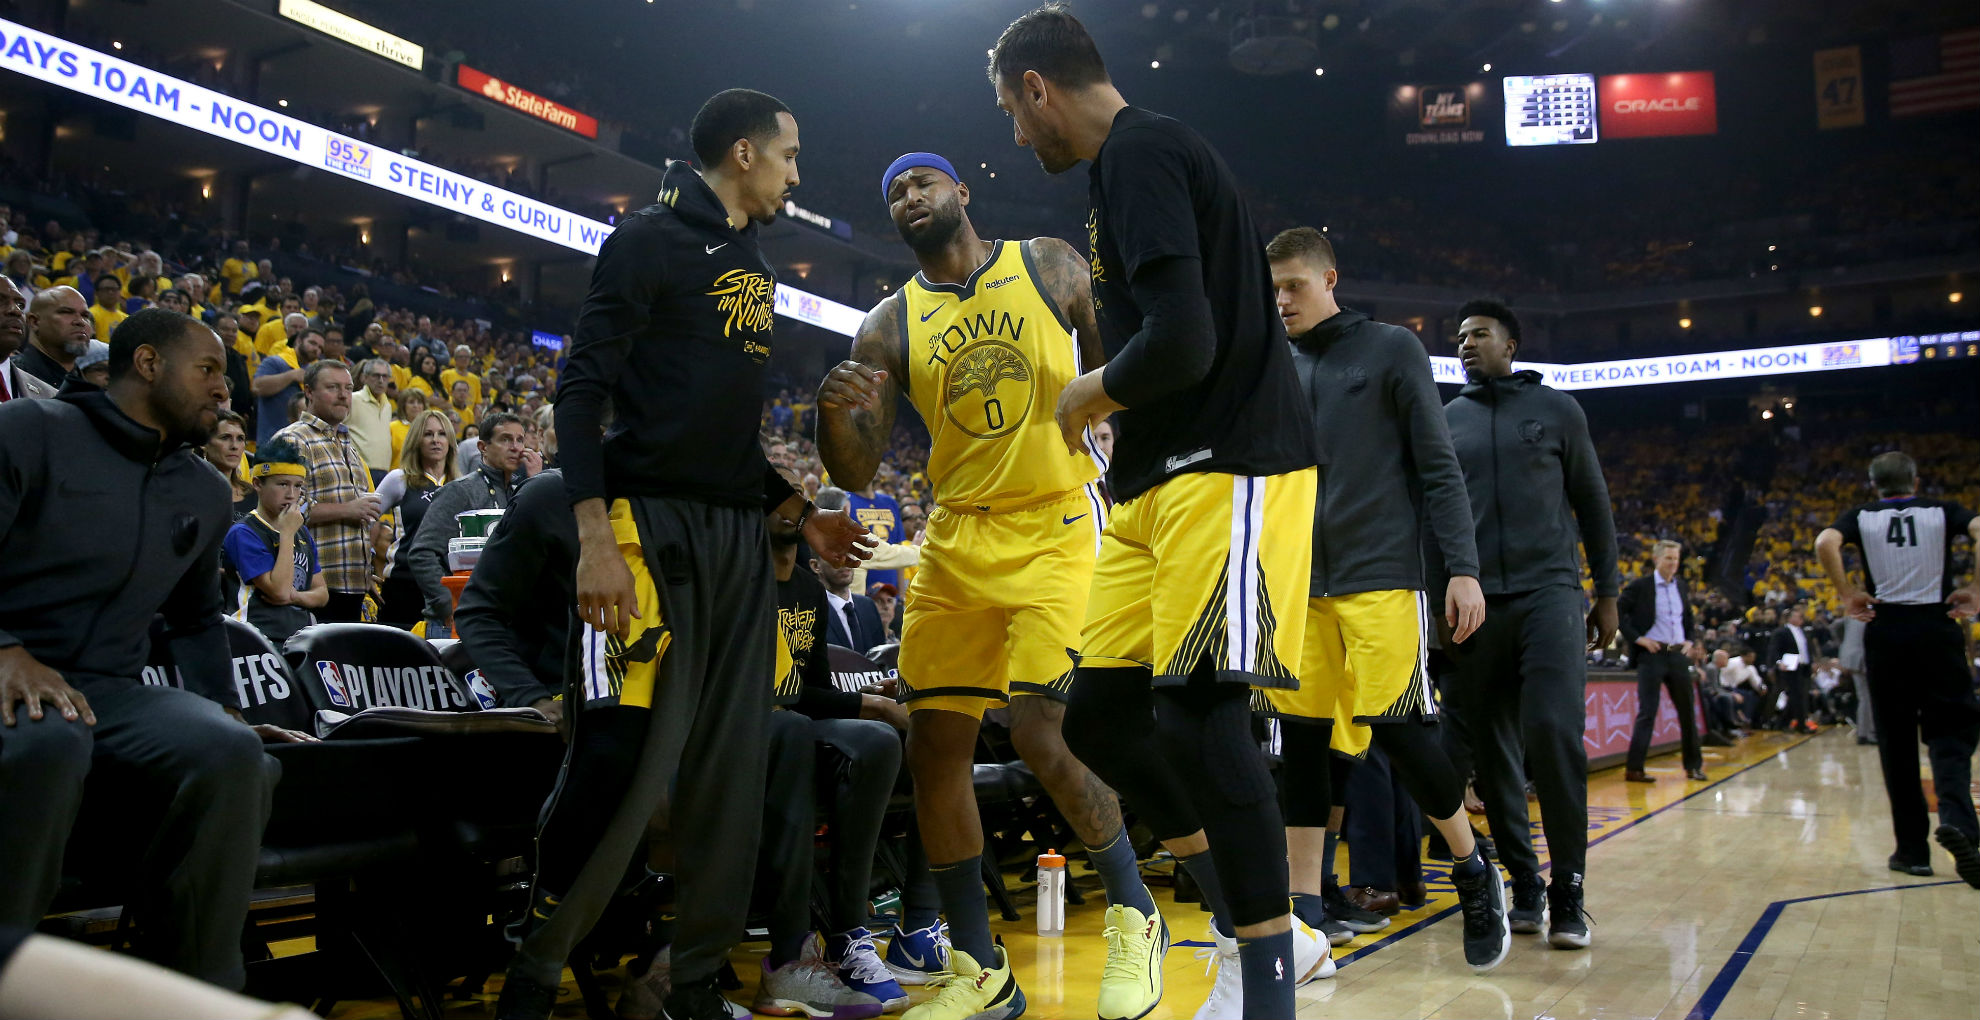 DeMarcus Cousins injury update: Warriors expect big man to miss rest of postseason, report says